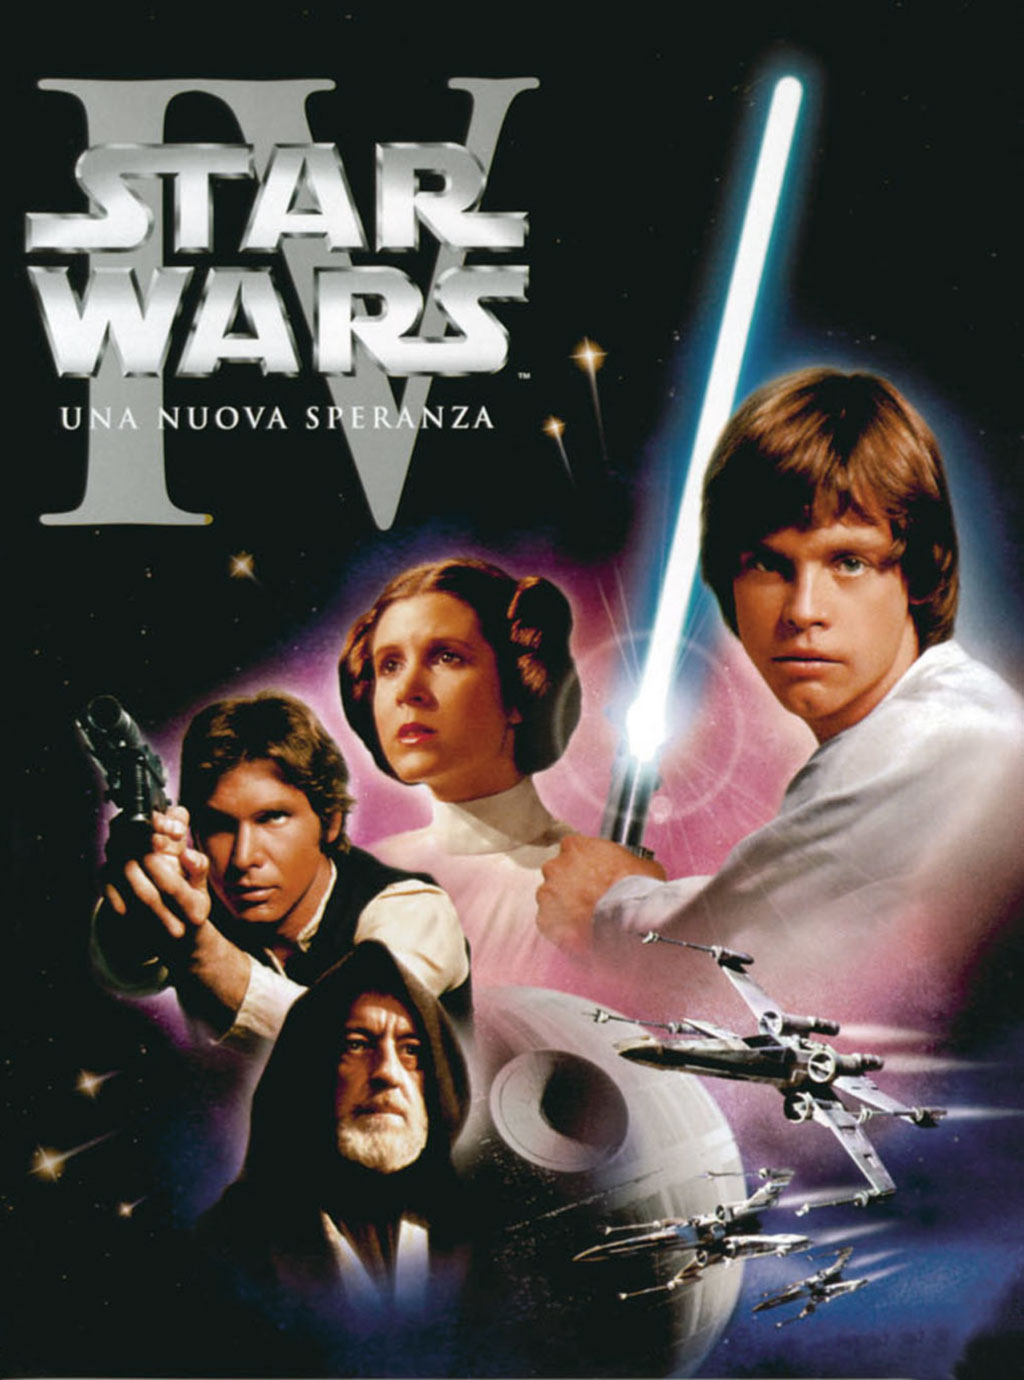 Guerre-stellari-una-nuova-speranza-star-wars-a-new-hope